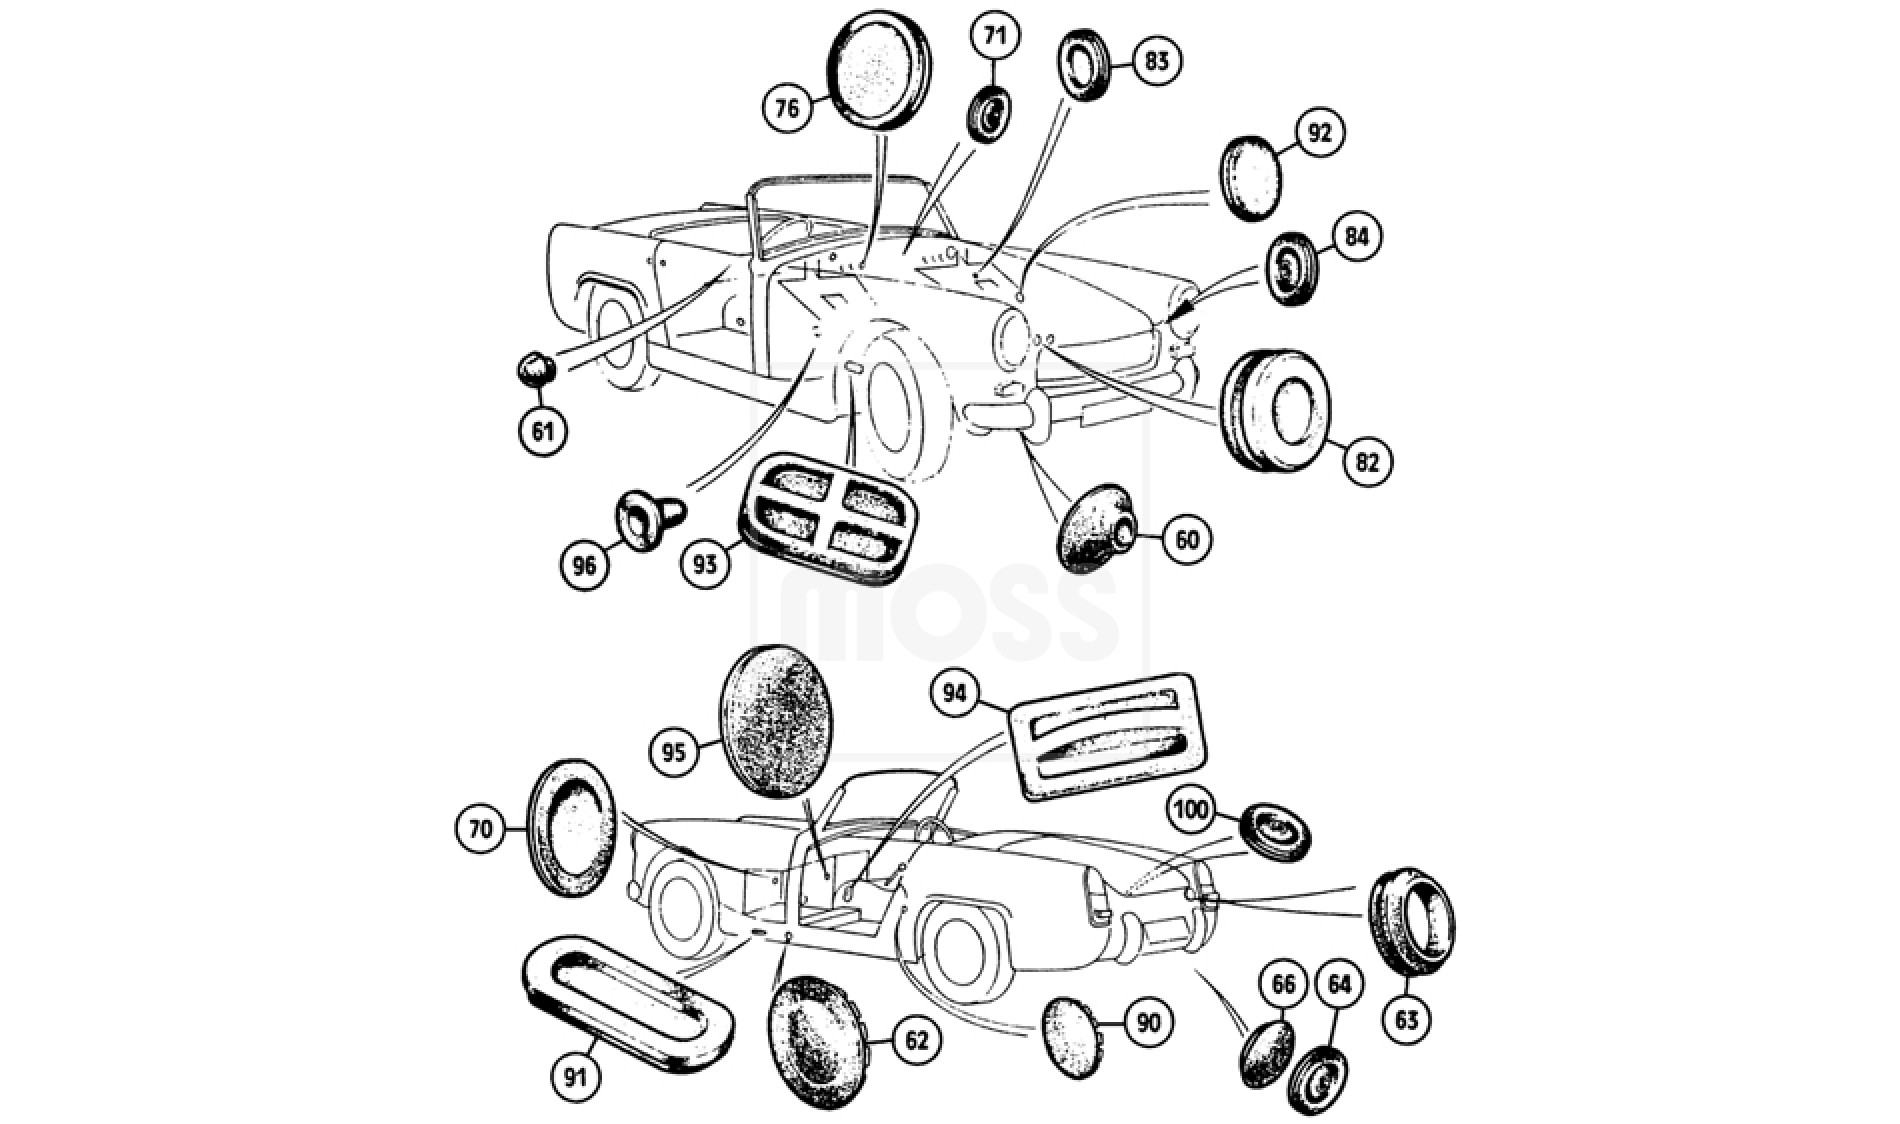 Midget Body & Chassis BODY PANELS Grommets, Plugs & Covers